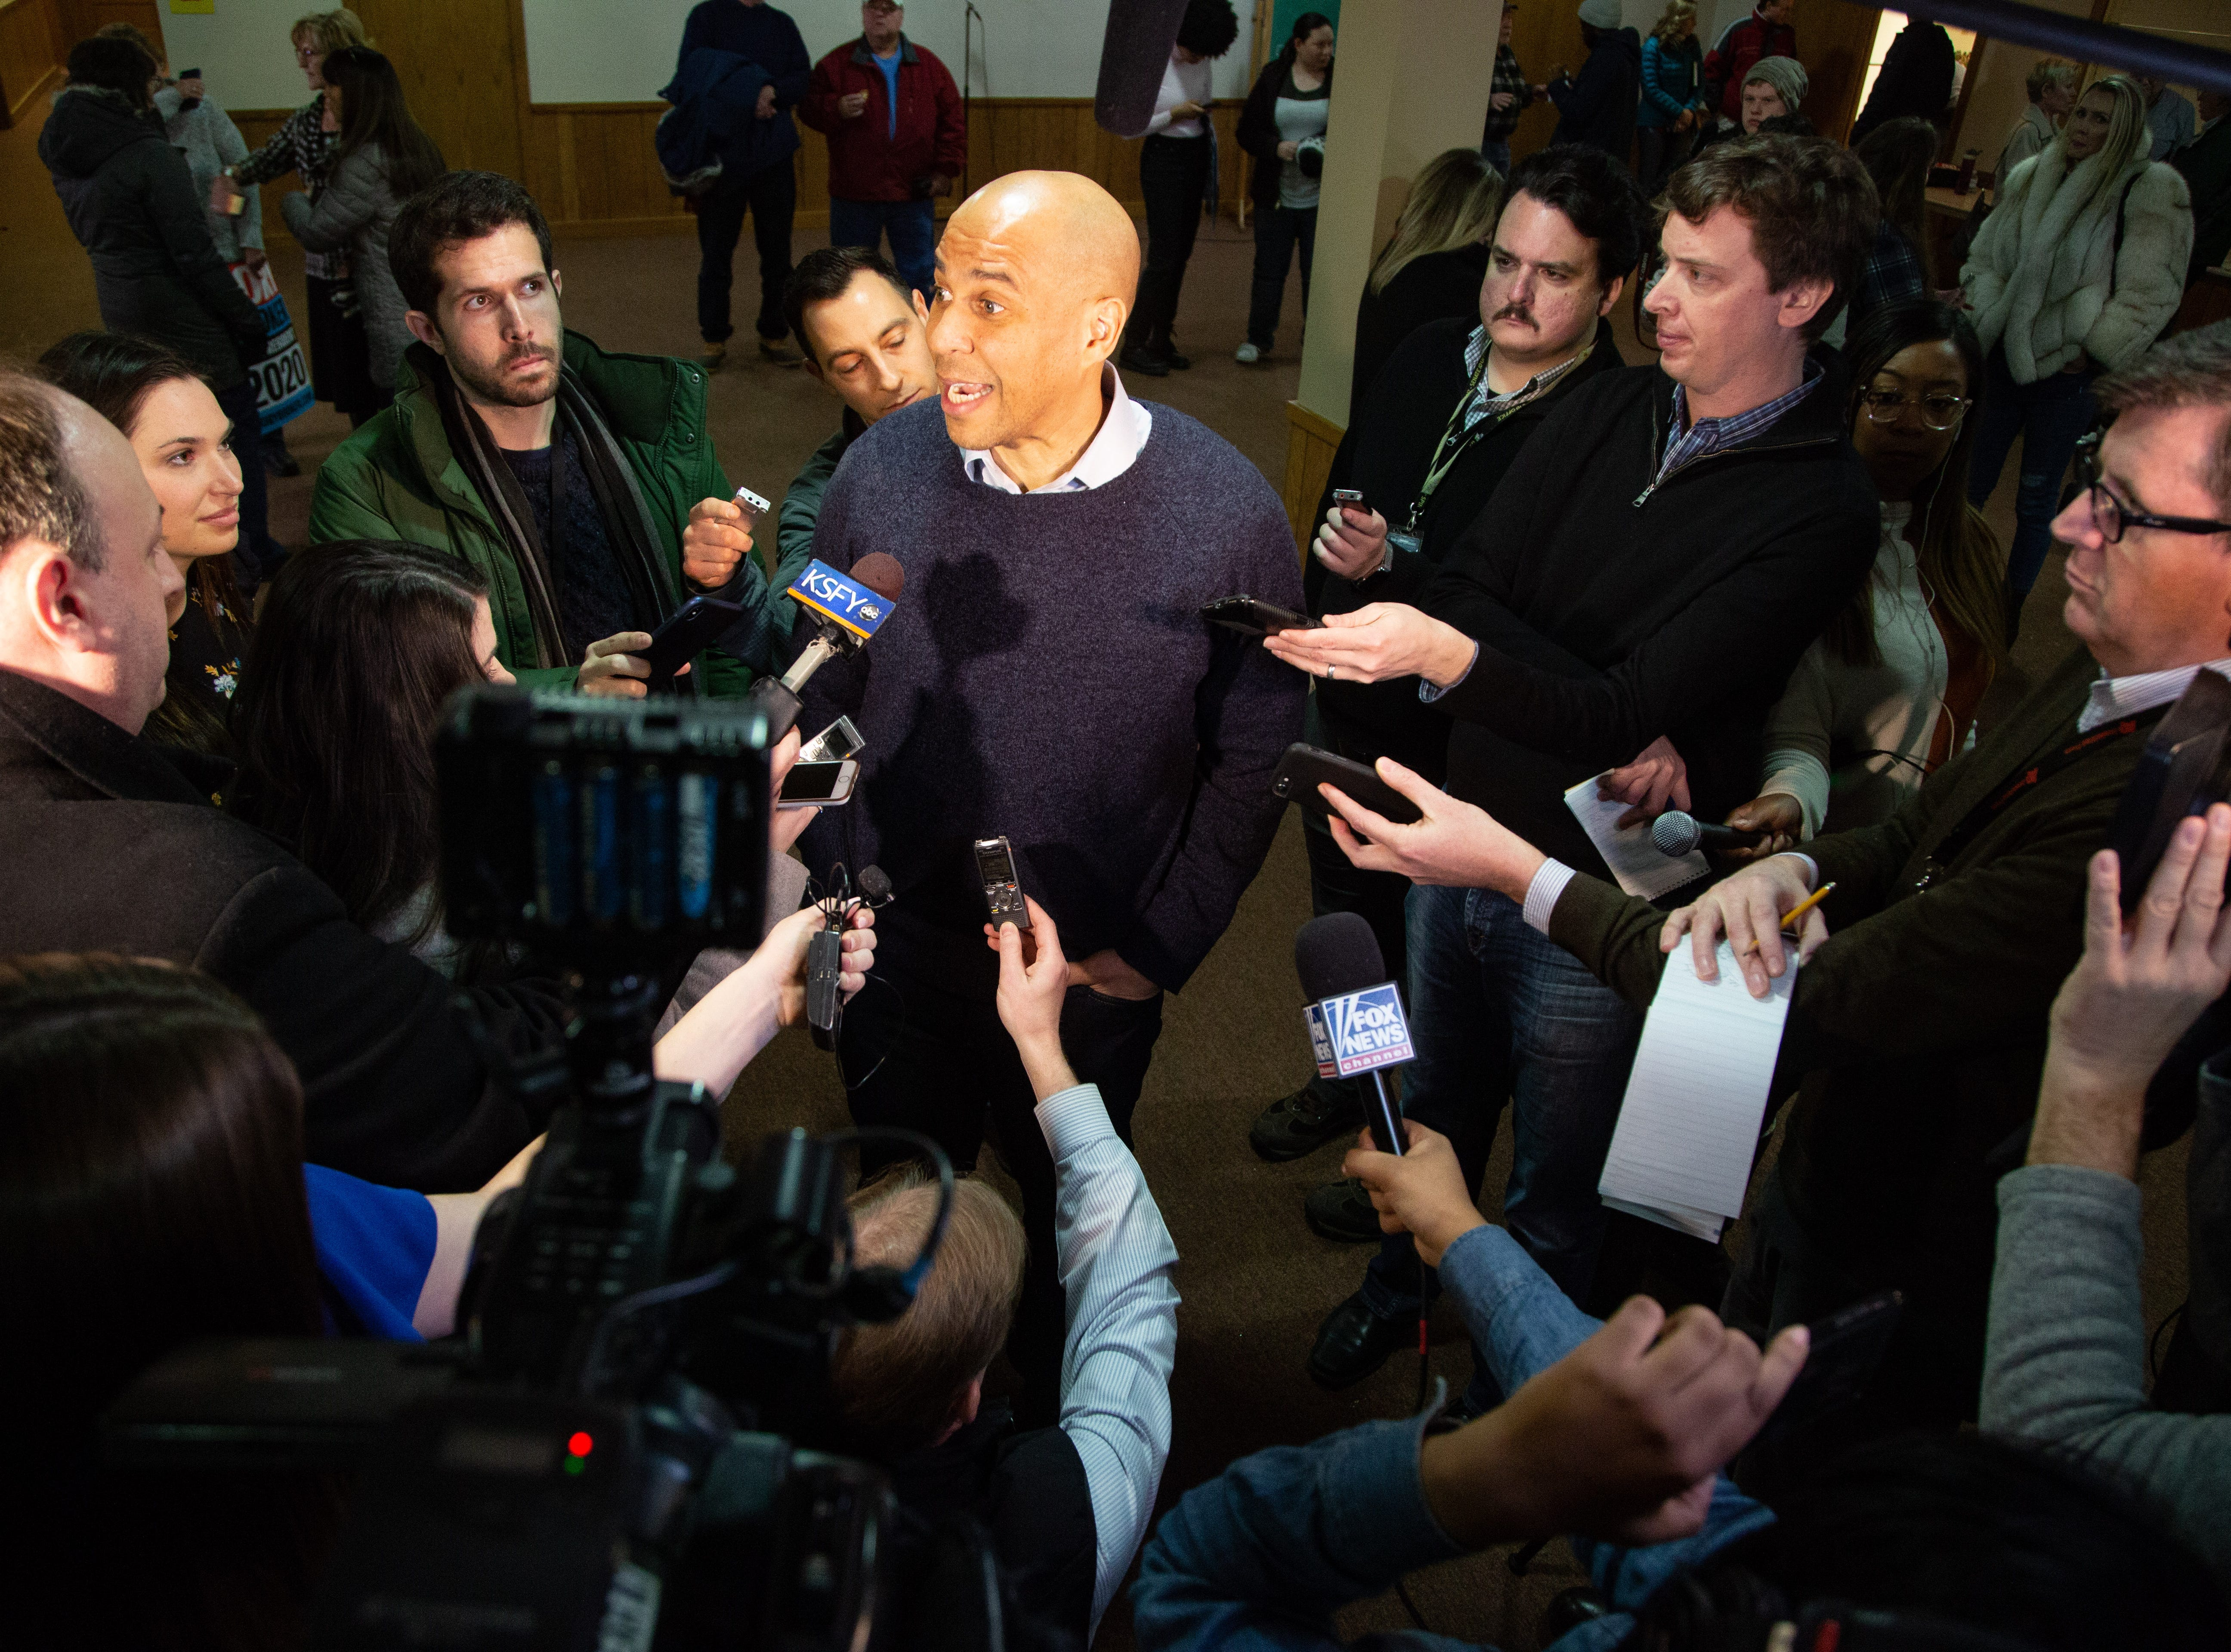 Sen. Cory Booker, D-N.J., speaks with reporters after a meet and greet at the First Congregational United Church of Christ in Mason City Friday, Feb. 8, 2019.